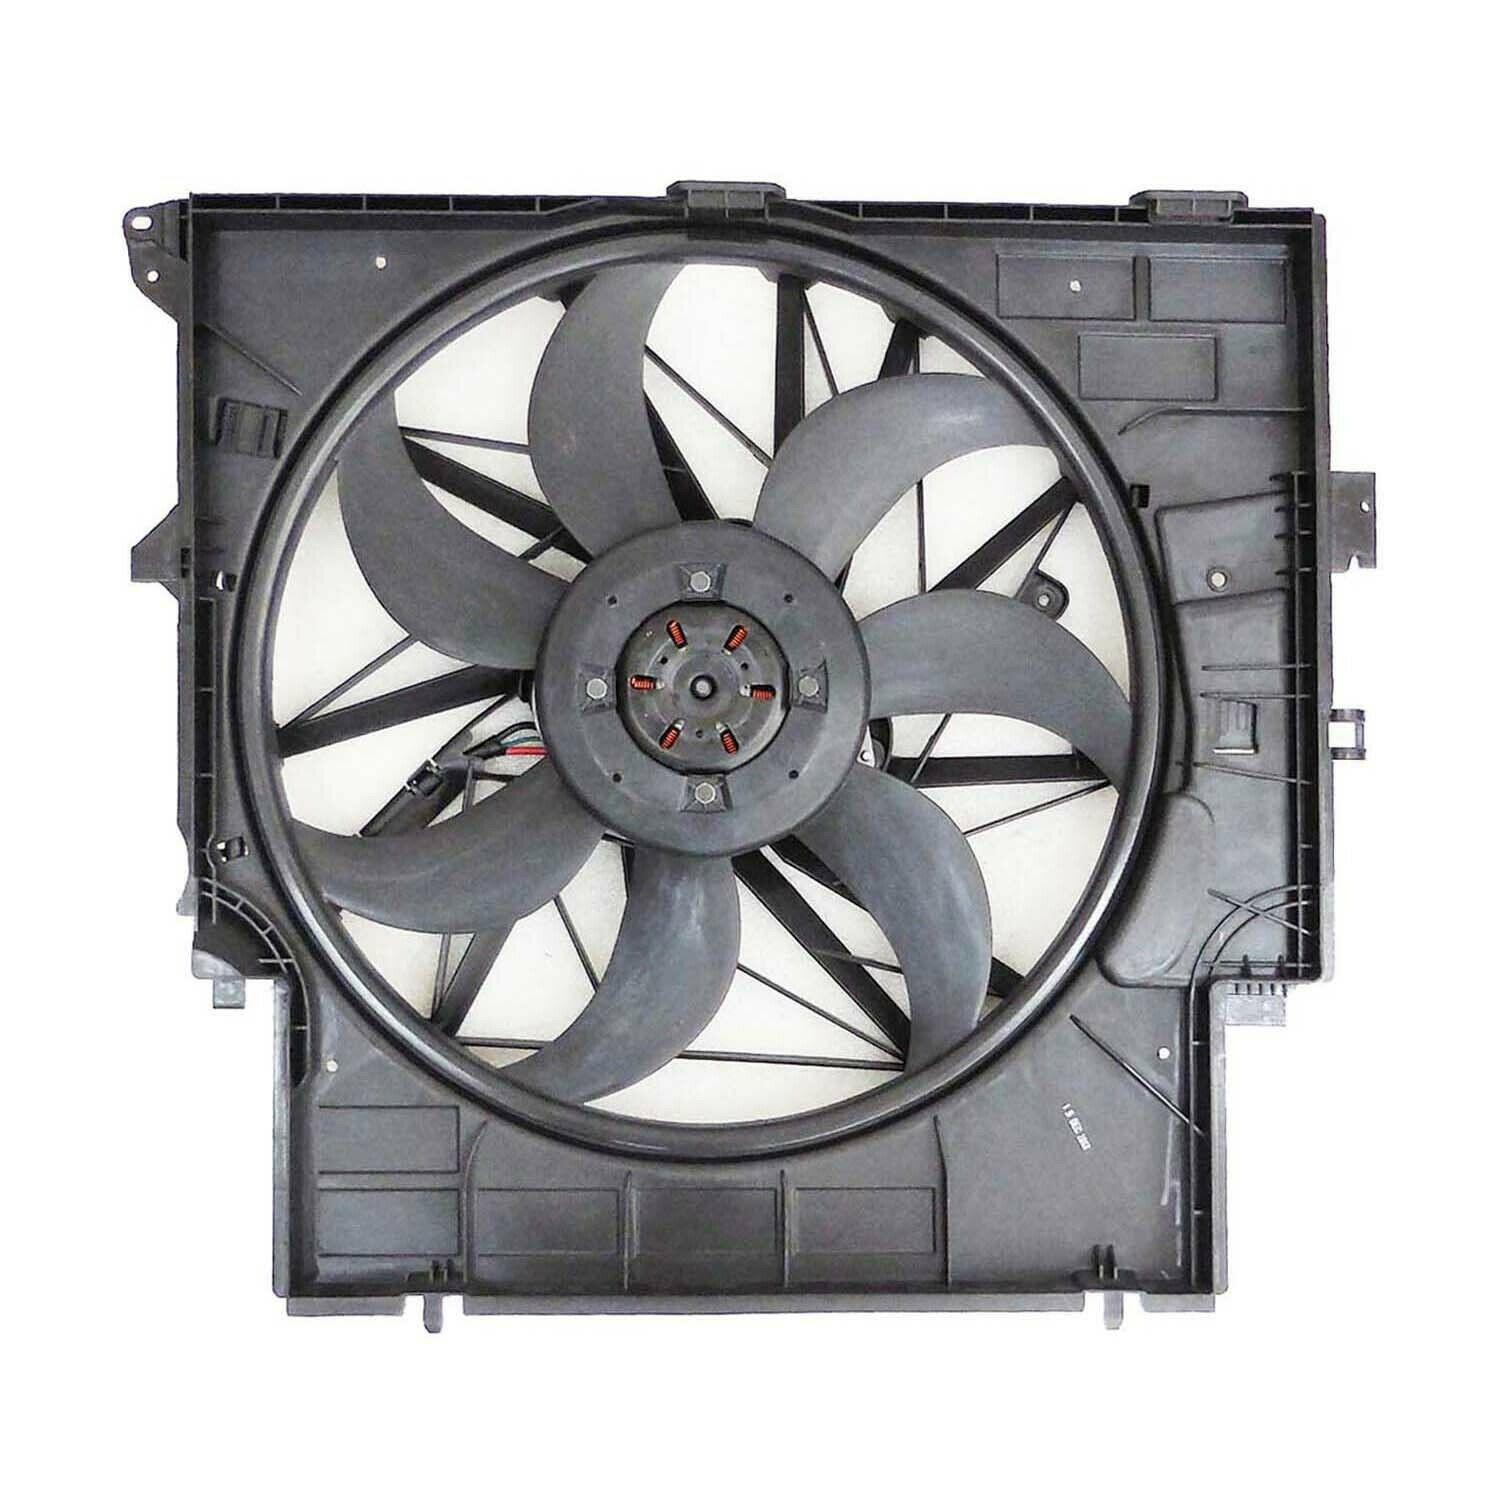 BM3115114 COOLING FAN ASSEMBLY FITS BMW X3 2011 2017 X4